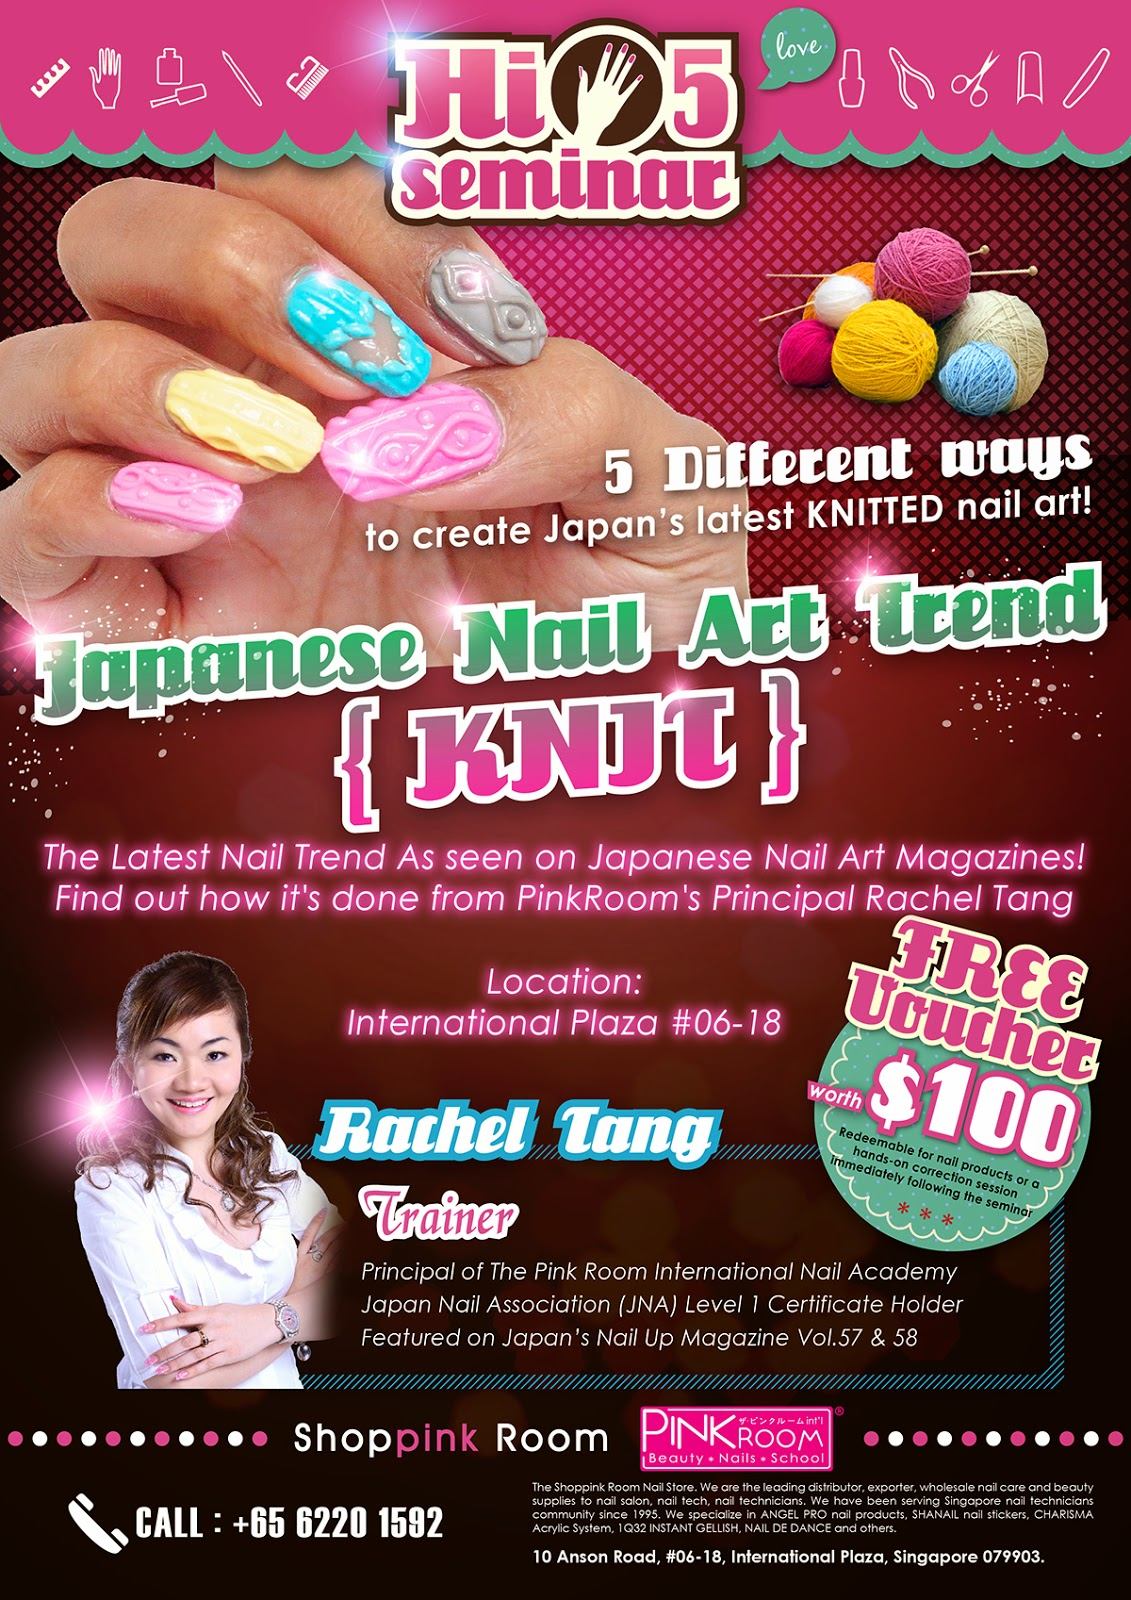 THE SHOPPINK ROOM [TAT Singapore SG]~ for all your manicure nail ...